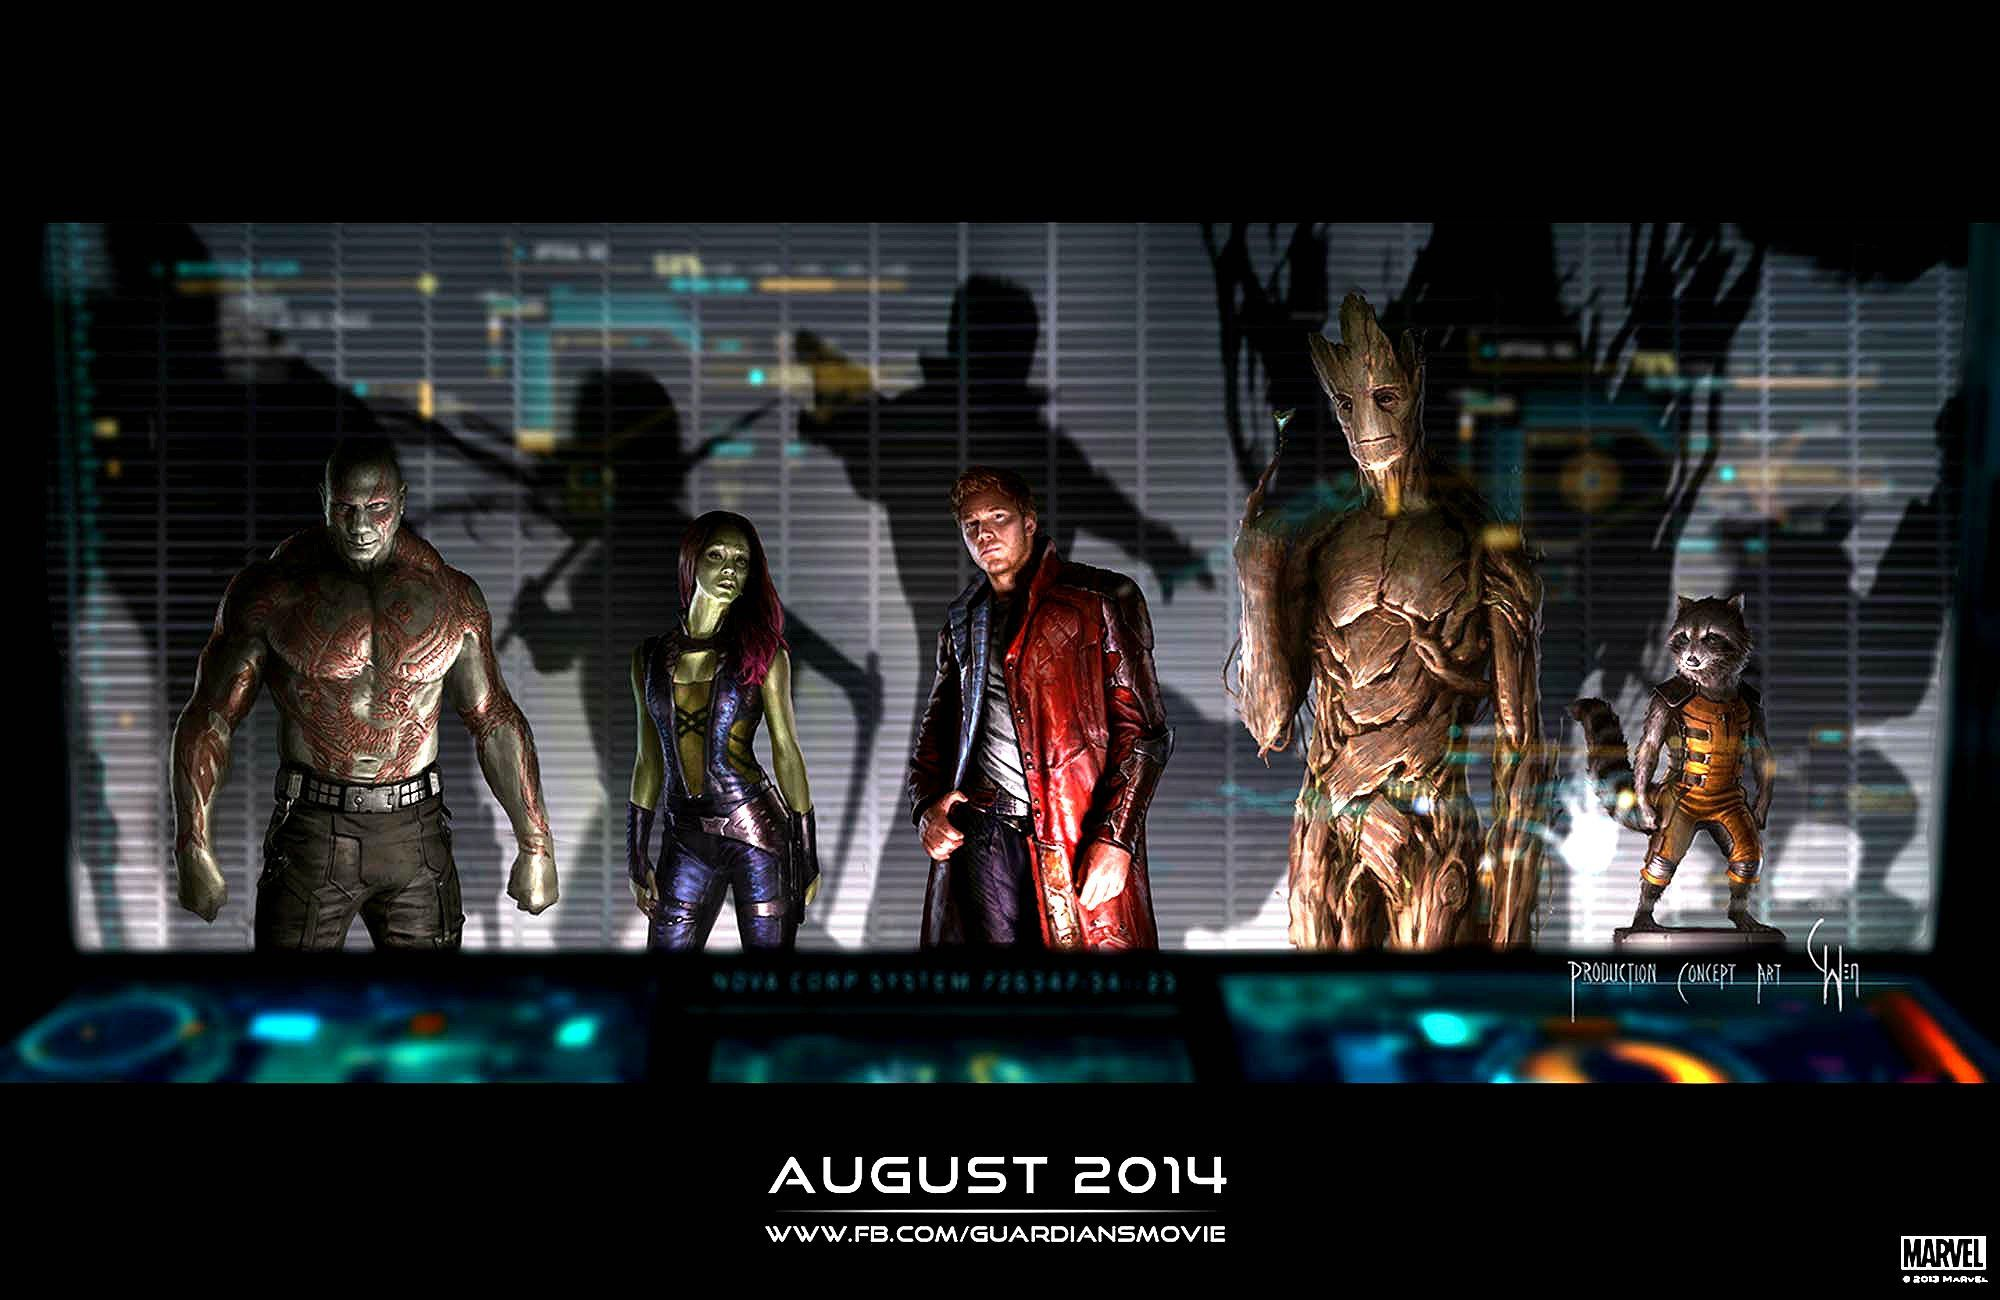 Beautiful Wallpaper Movie Guardians The Galaxy - 31a3d32ff14a40821622de9dda3c65a9  Image_715037.jpg